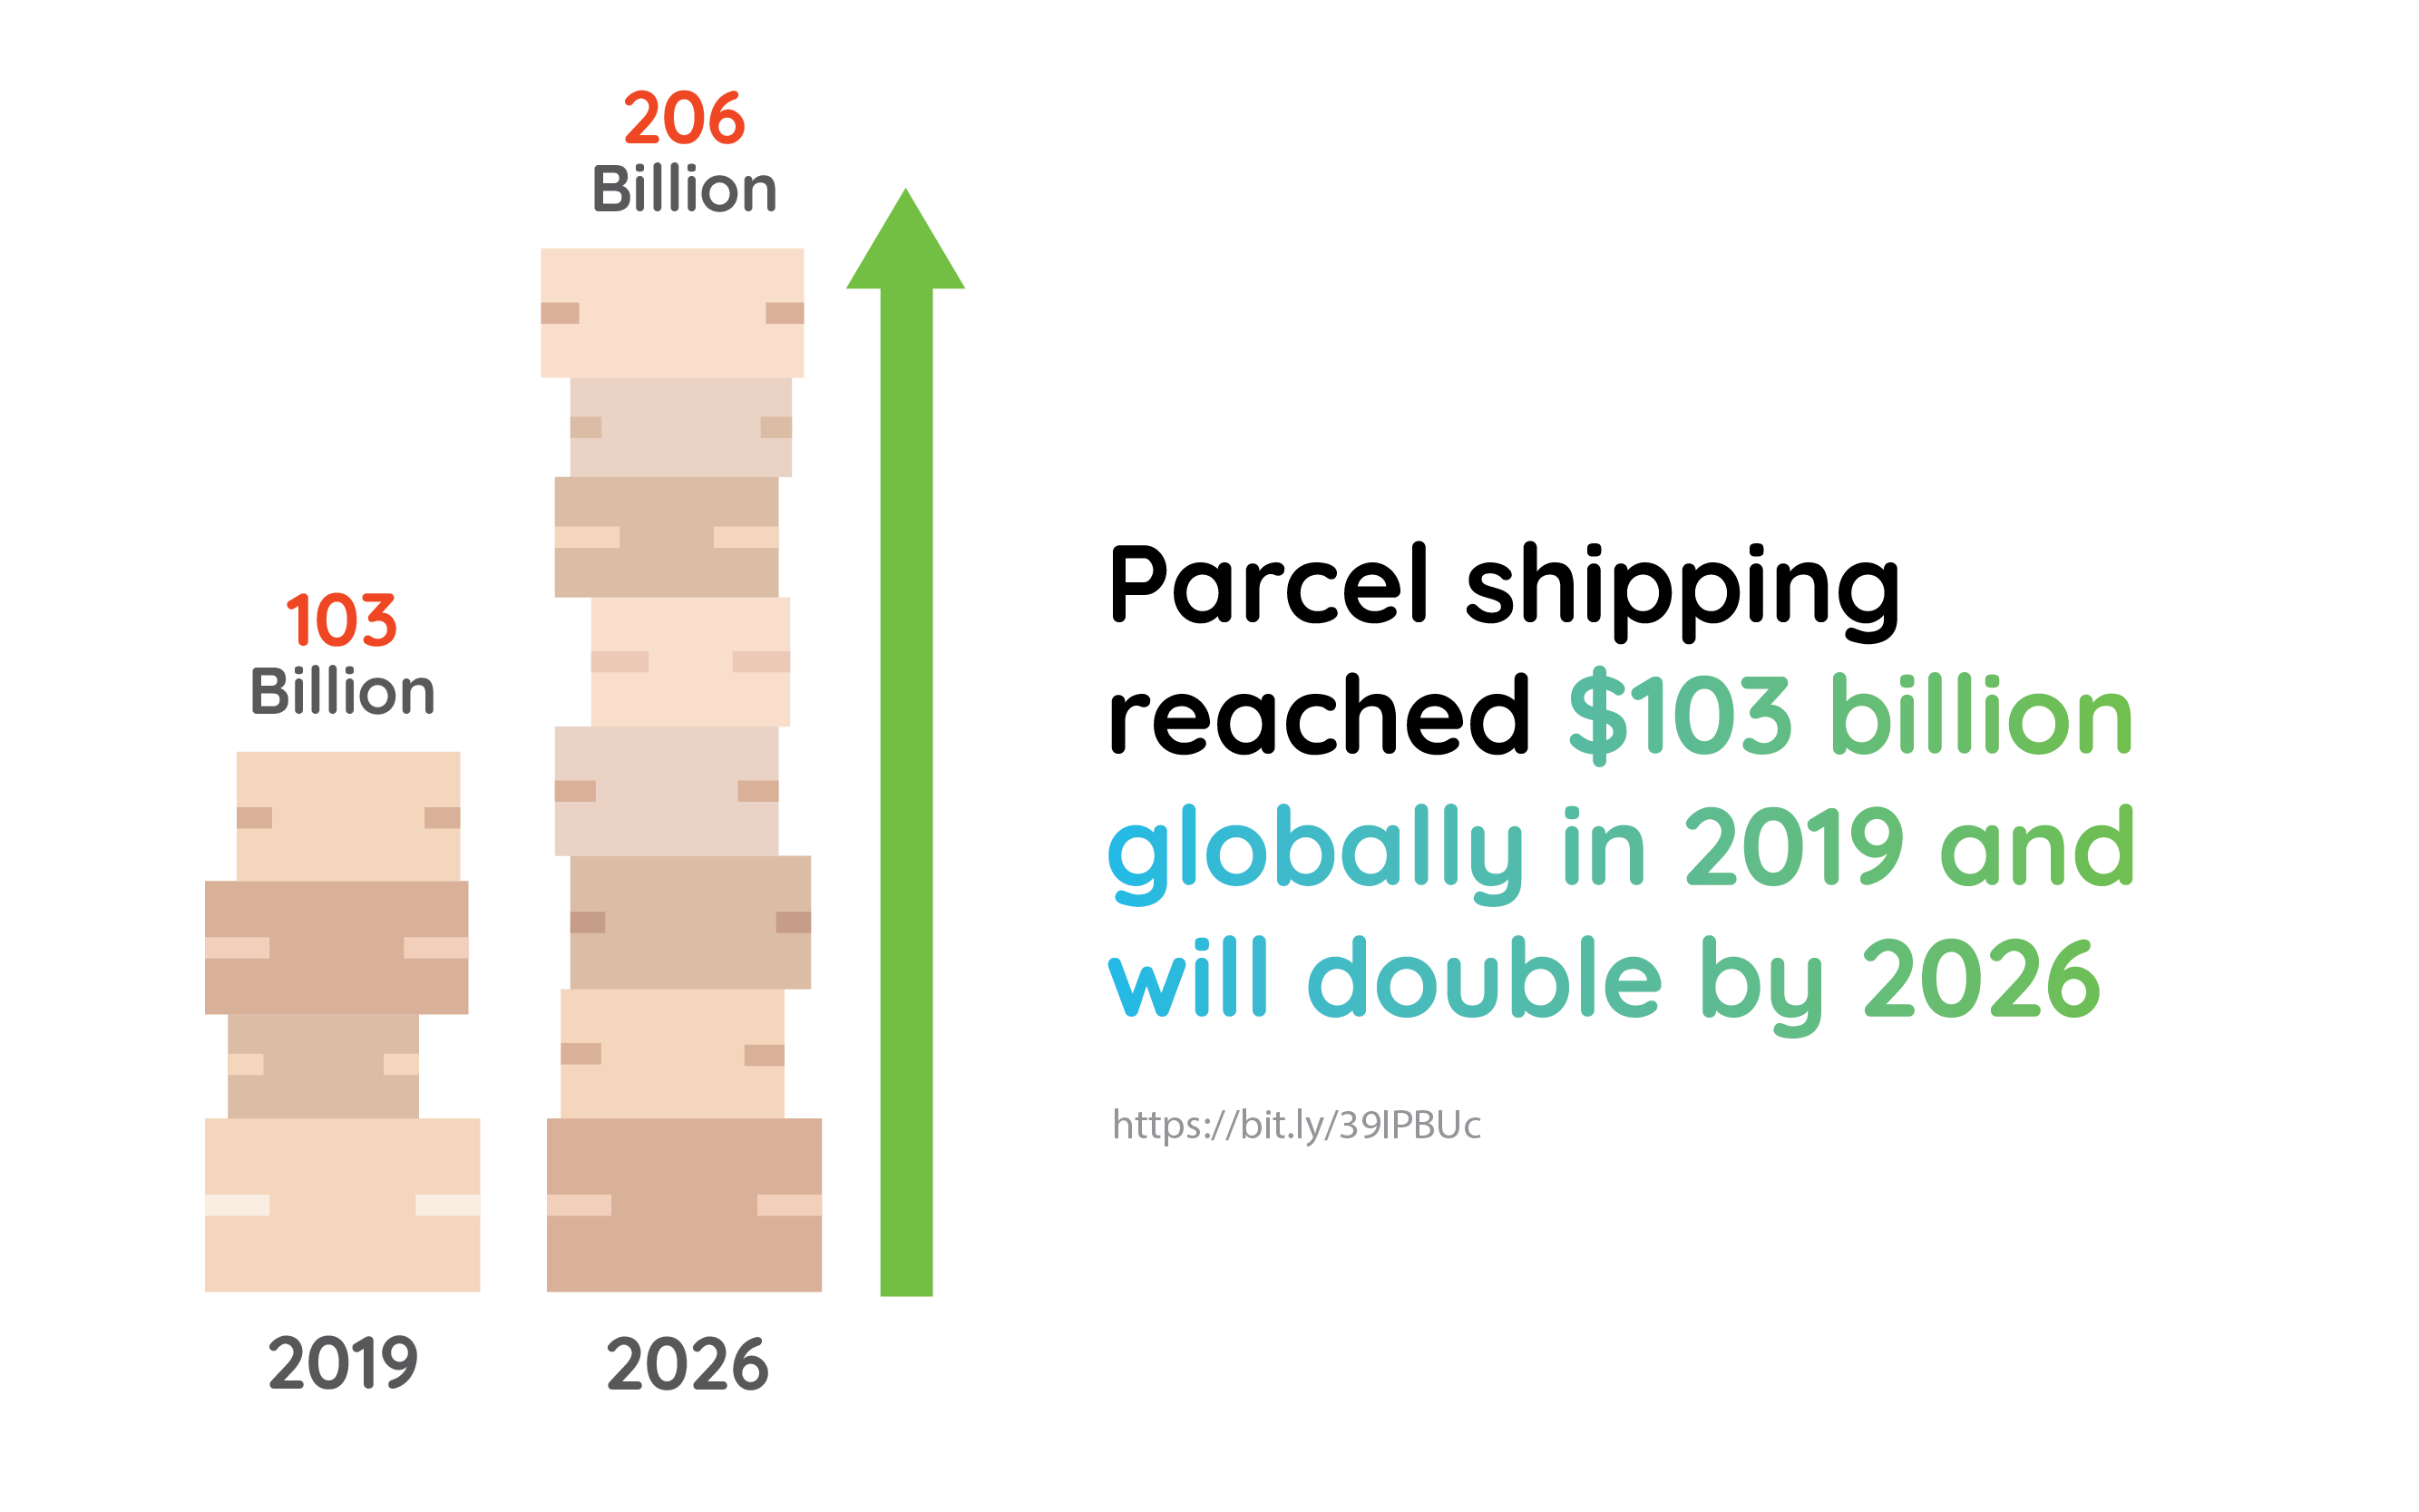 Parcel shipping reached $103 billion globally in 2019 and will double by 2026